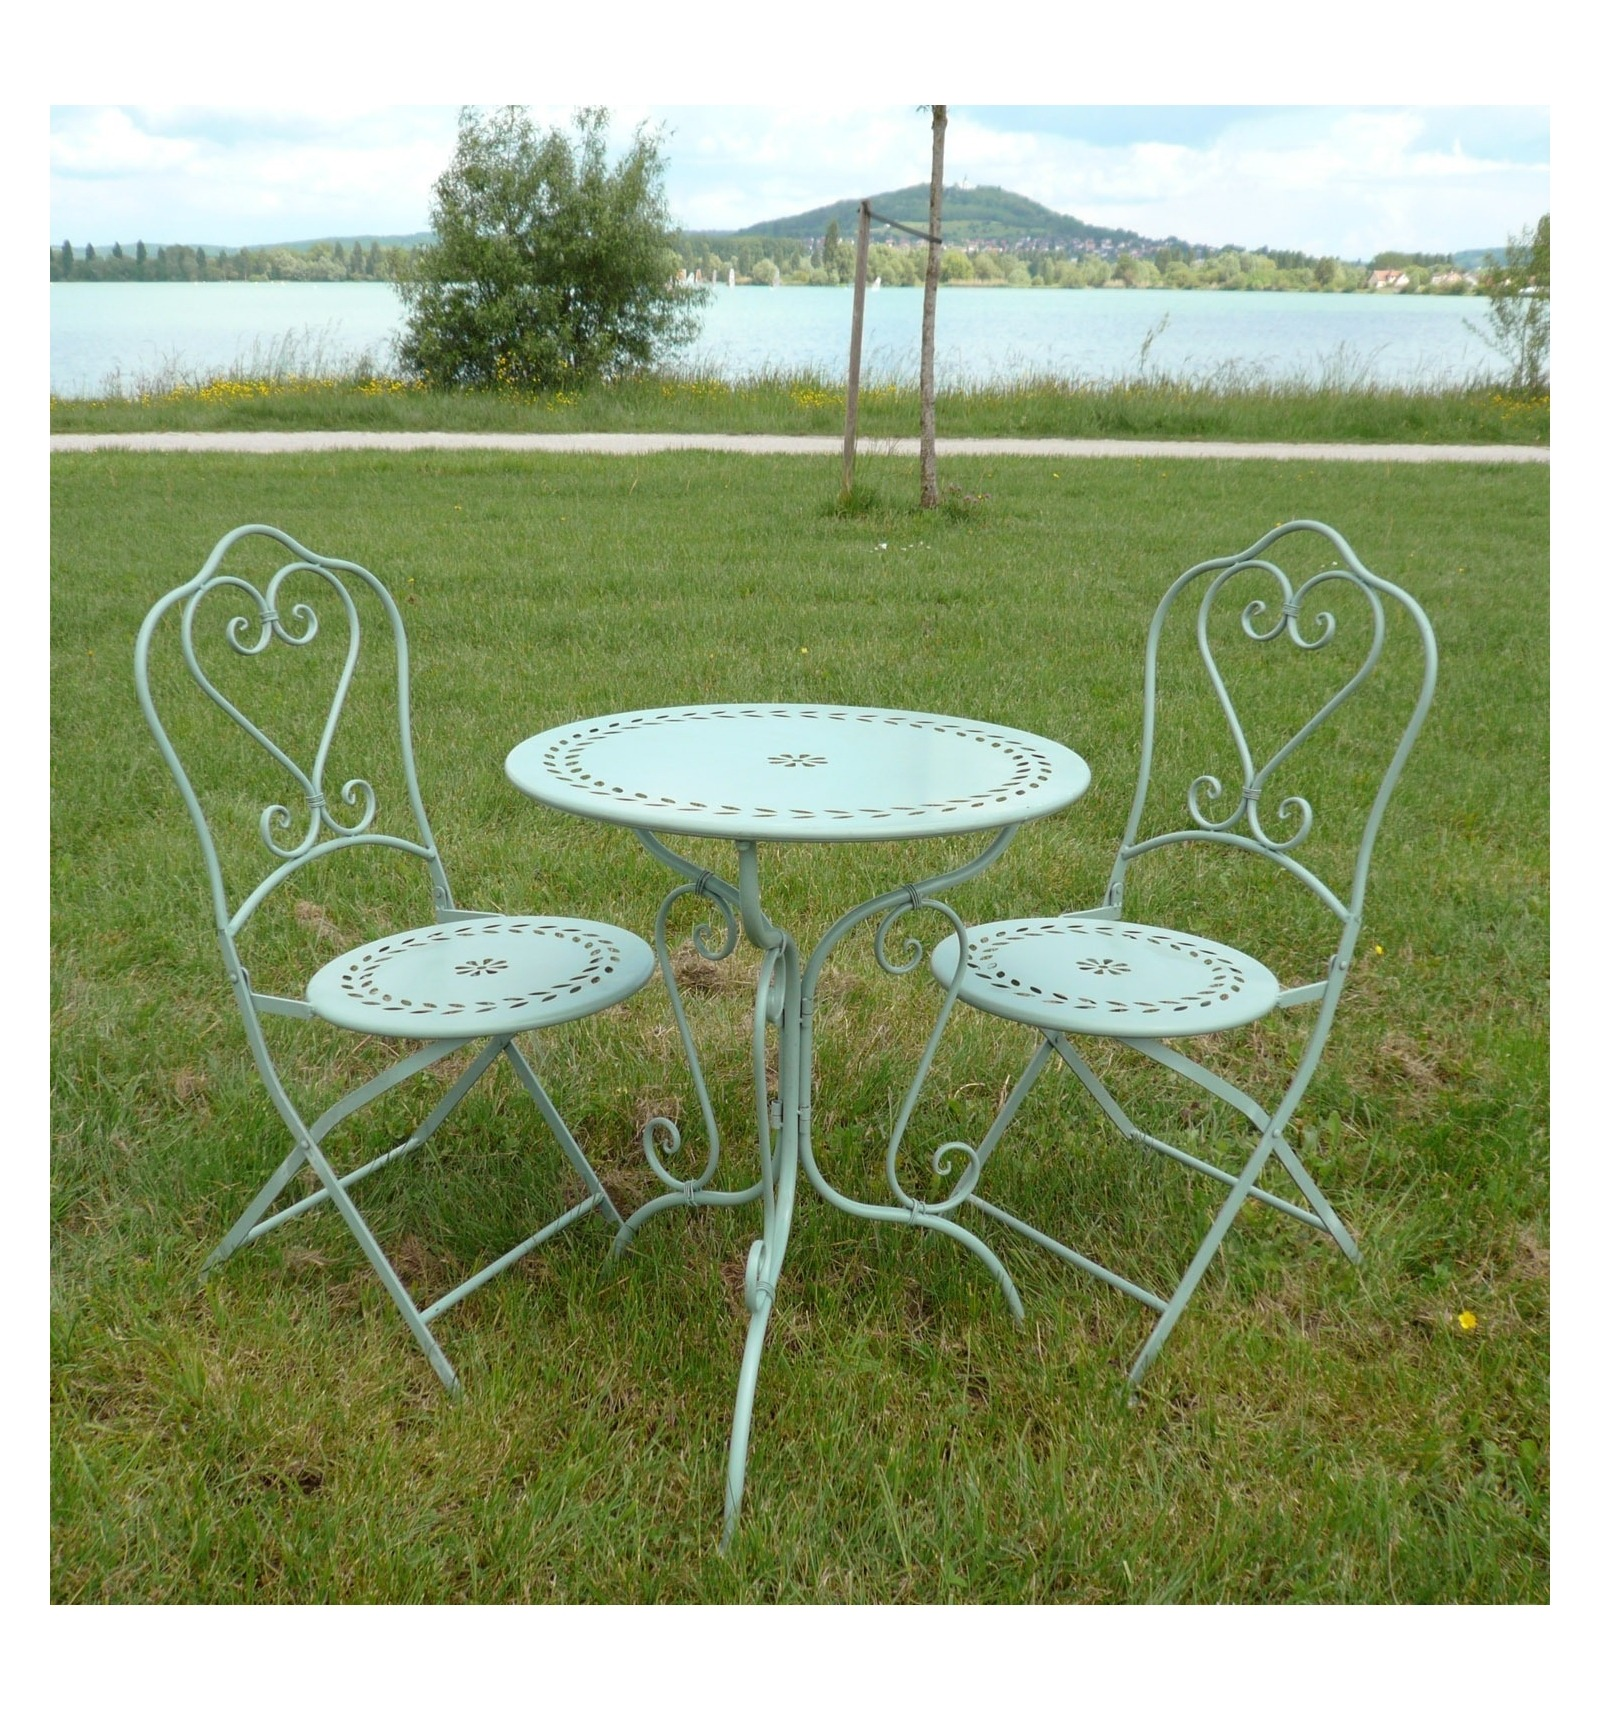 set of bistro wrought iron garden furniture chair table. Black Bedroom Furniture Sets. Home Design Ideas